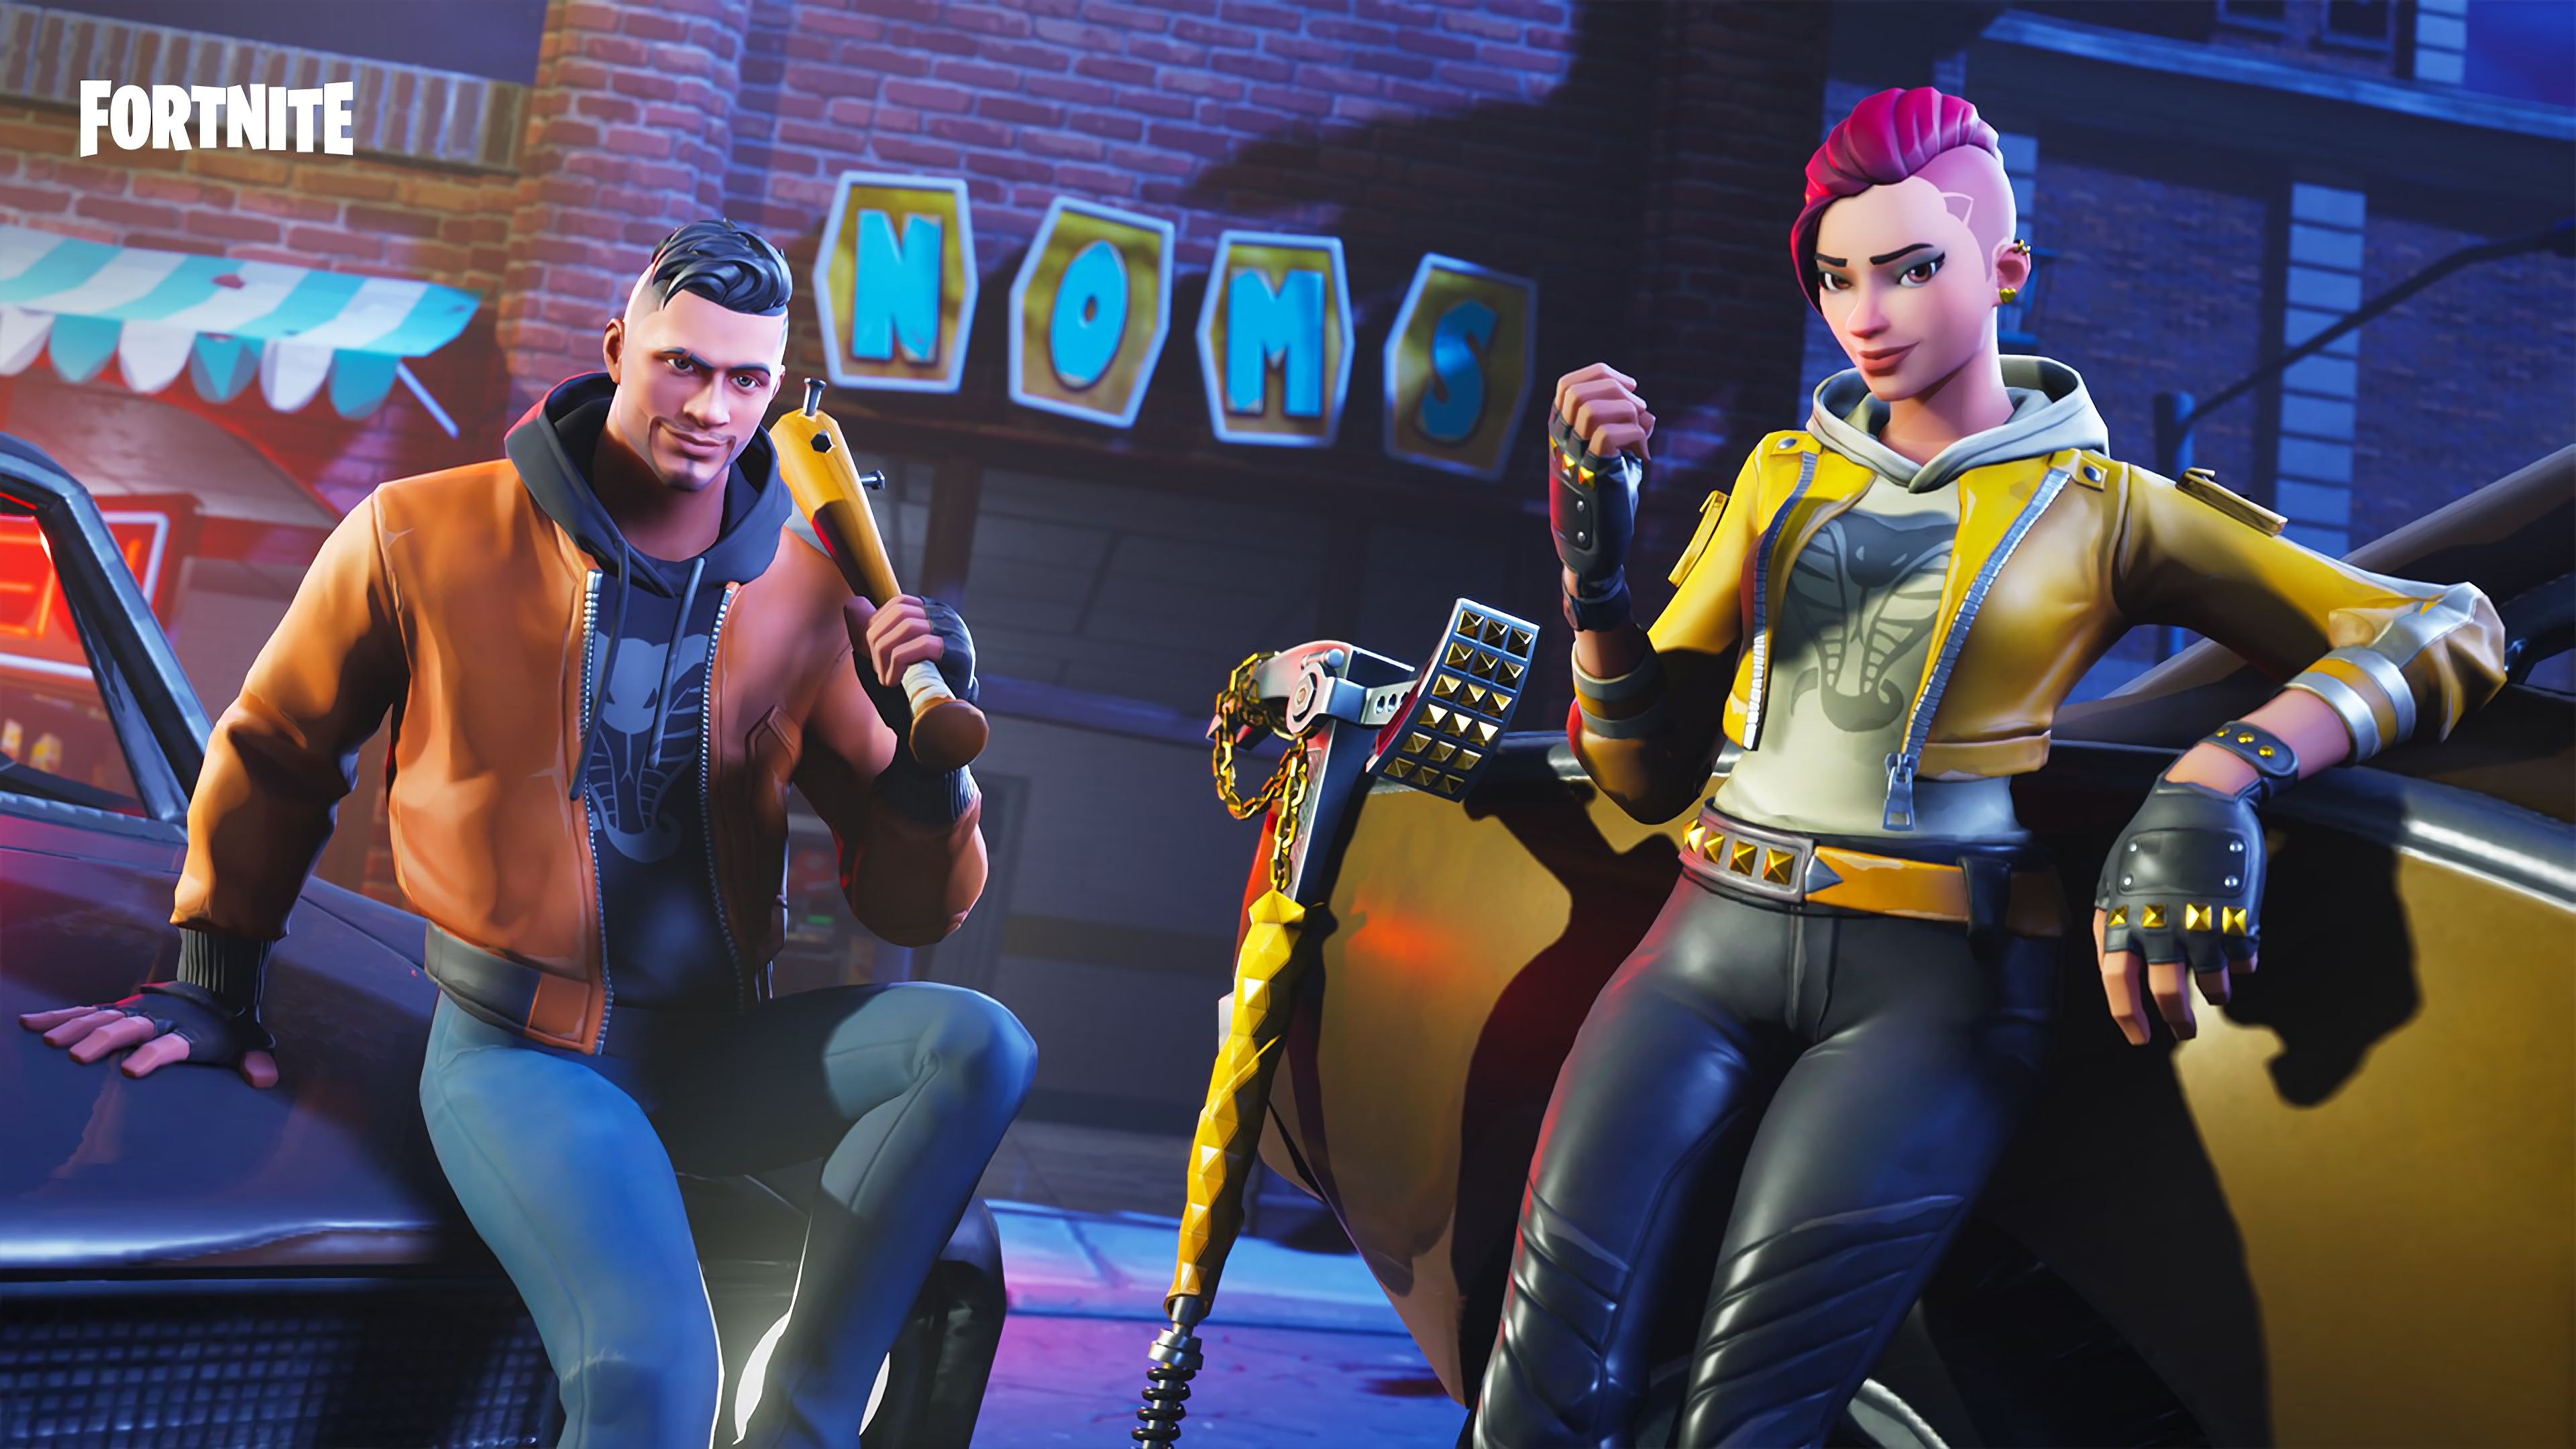 fortnite crew 4k ps games wallpapers hd wallpapers games wallpapers fortnite wallpapers 4k wallpapers 2018 games wall fortnite games on youtube epic games pinterest